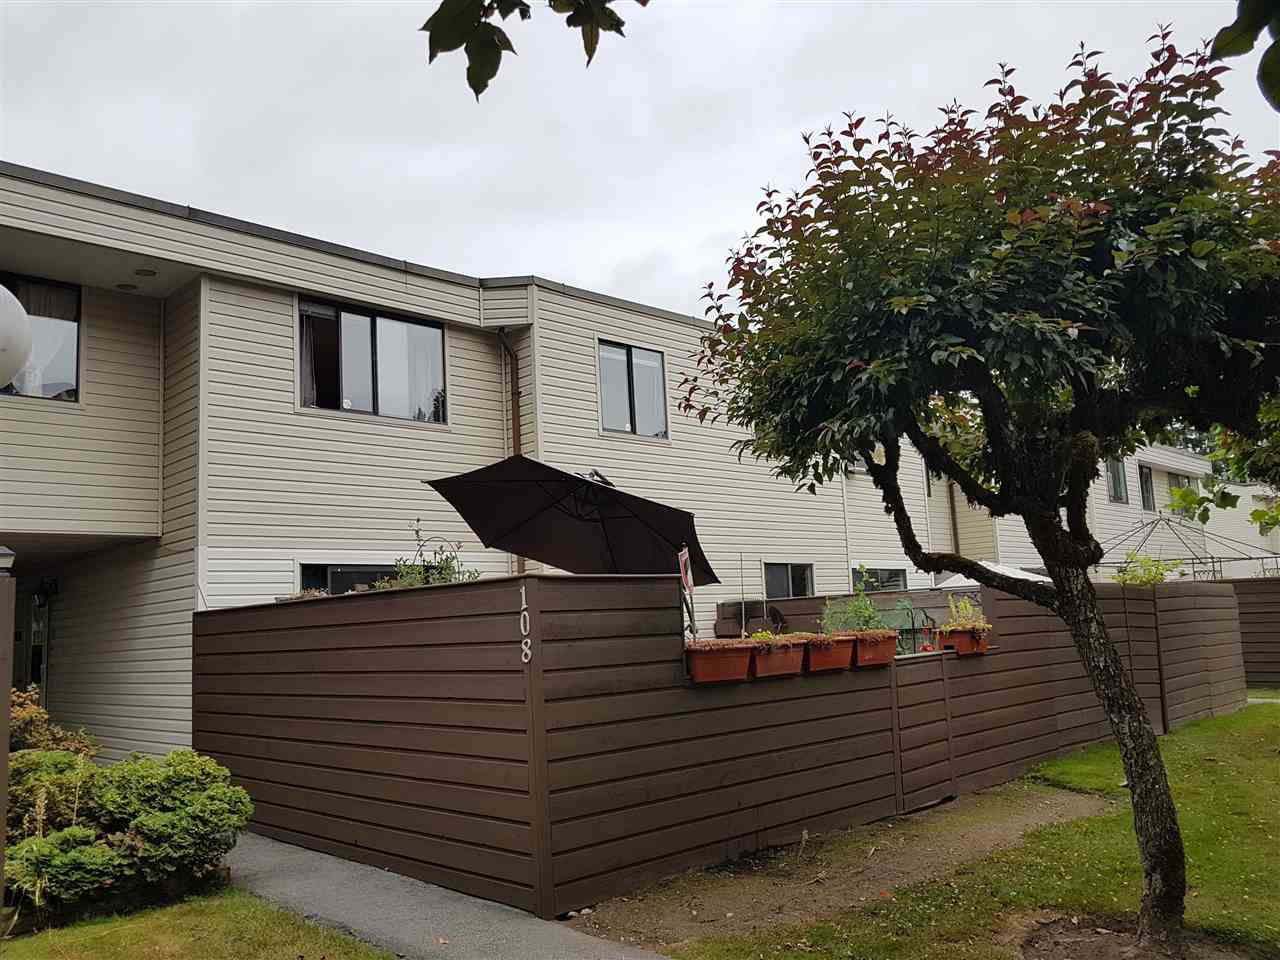 """Main Photo: 108 14153 104TH Avenue in Surrey: Whalley Townhouse for sale in """"HAWTHORNE PARK"""" (North Surrey)  : MLS®# R2385646"""